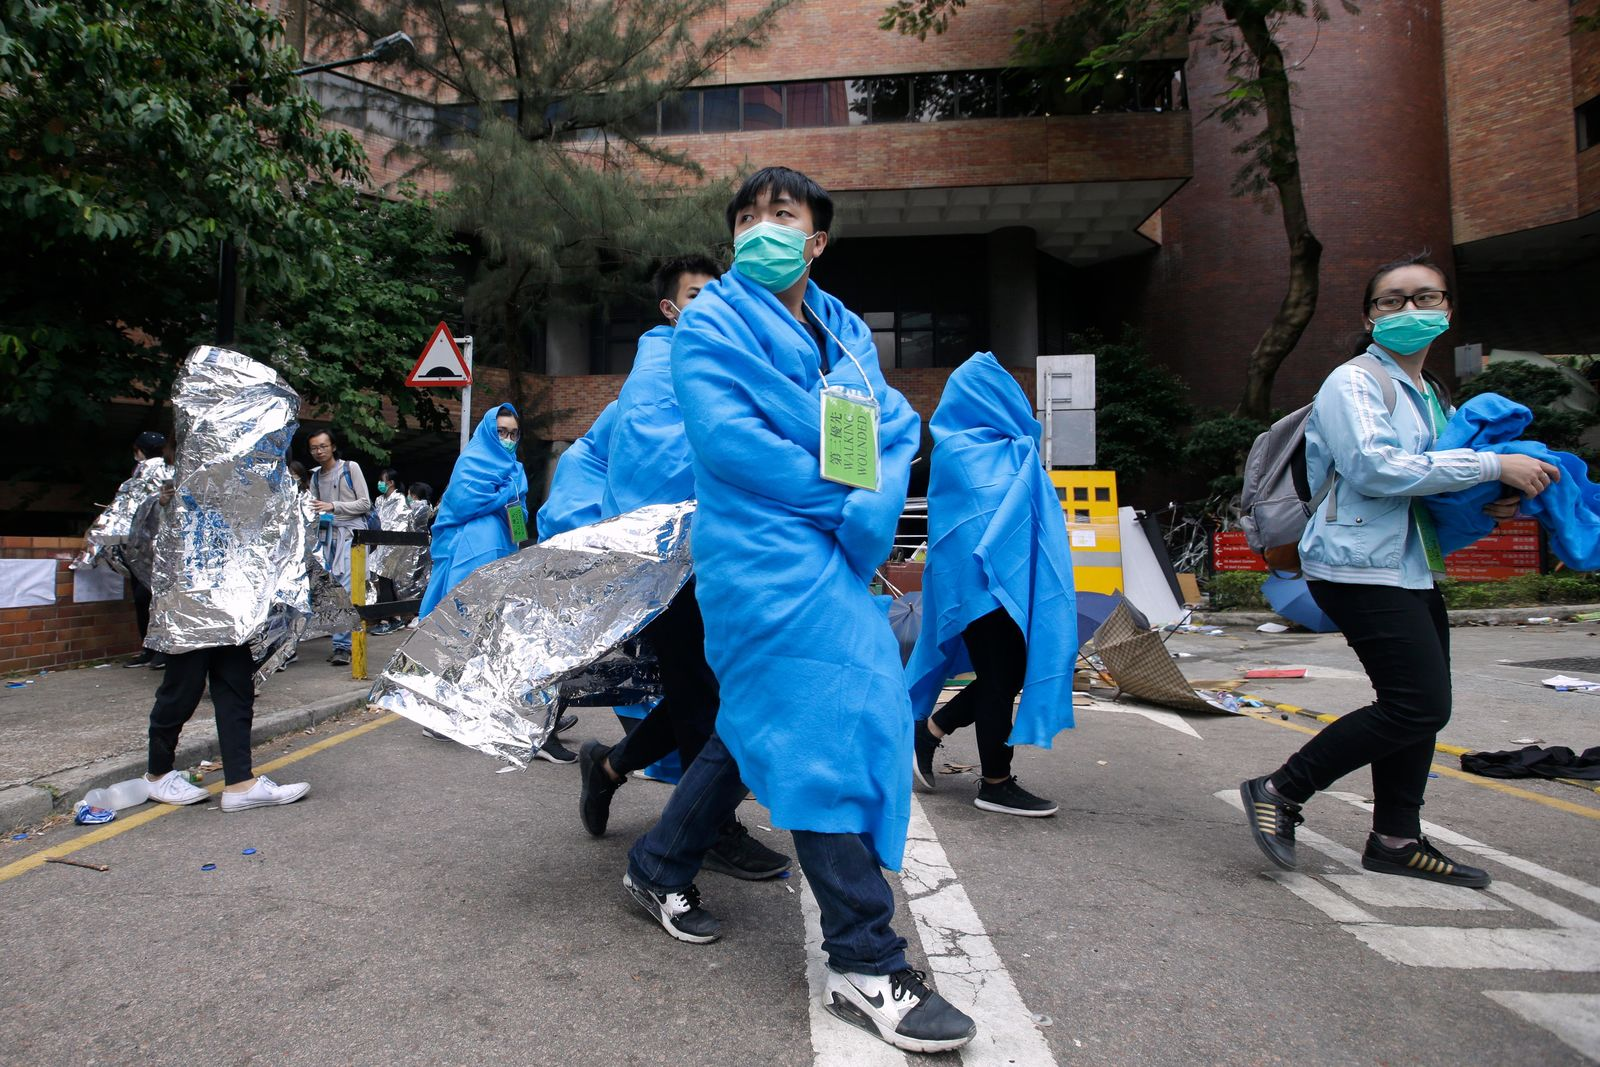 Injured protesters wrapped in blankets, walk through the campus of the Hong Kong Polytechnic University in Hong Kong, Tuesday, Nov. 19, 2019.. (AP Photo/Achmad Ibrahim)